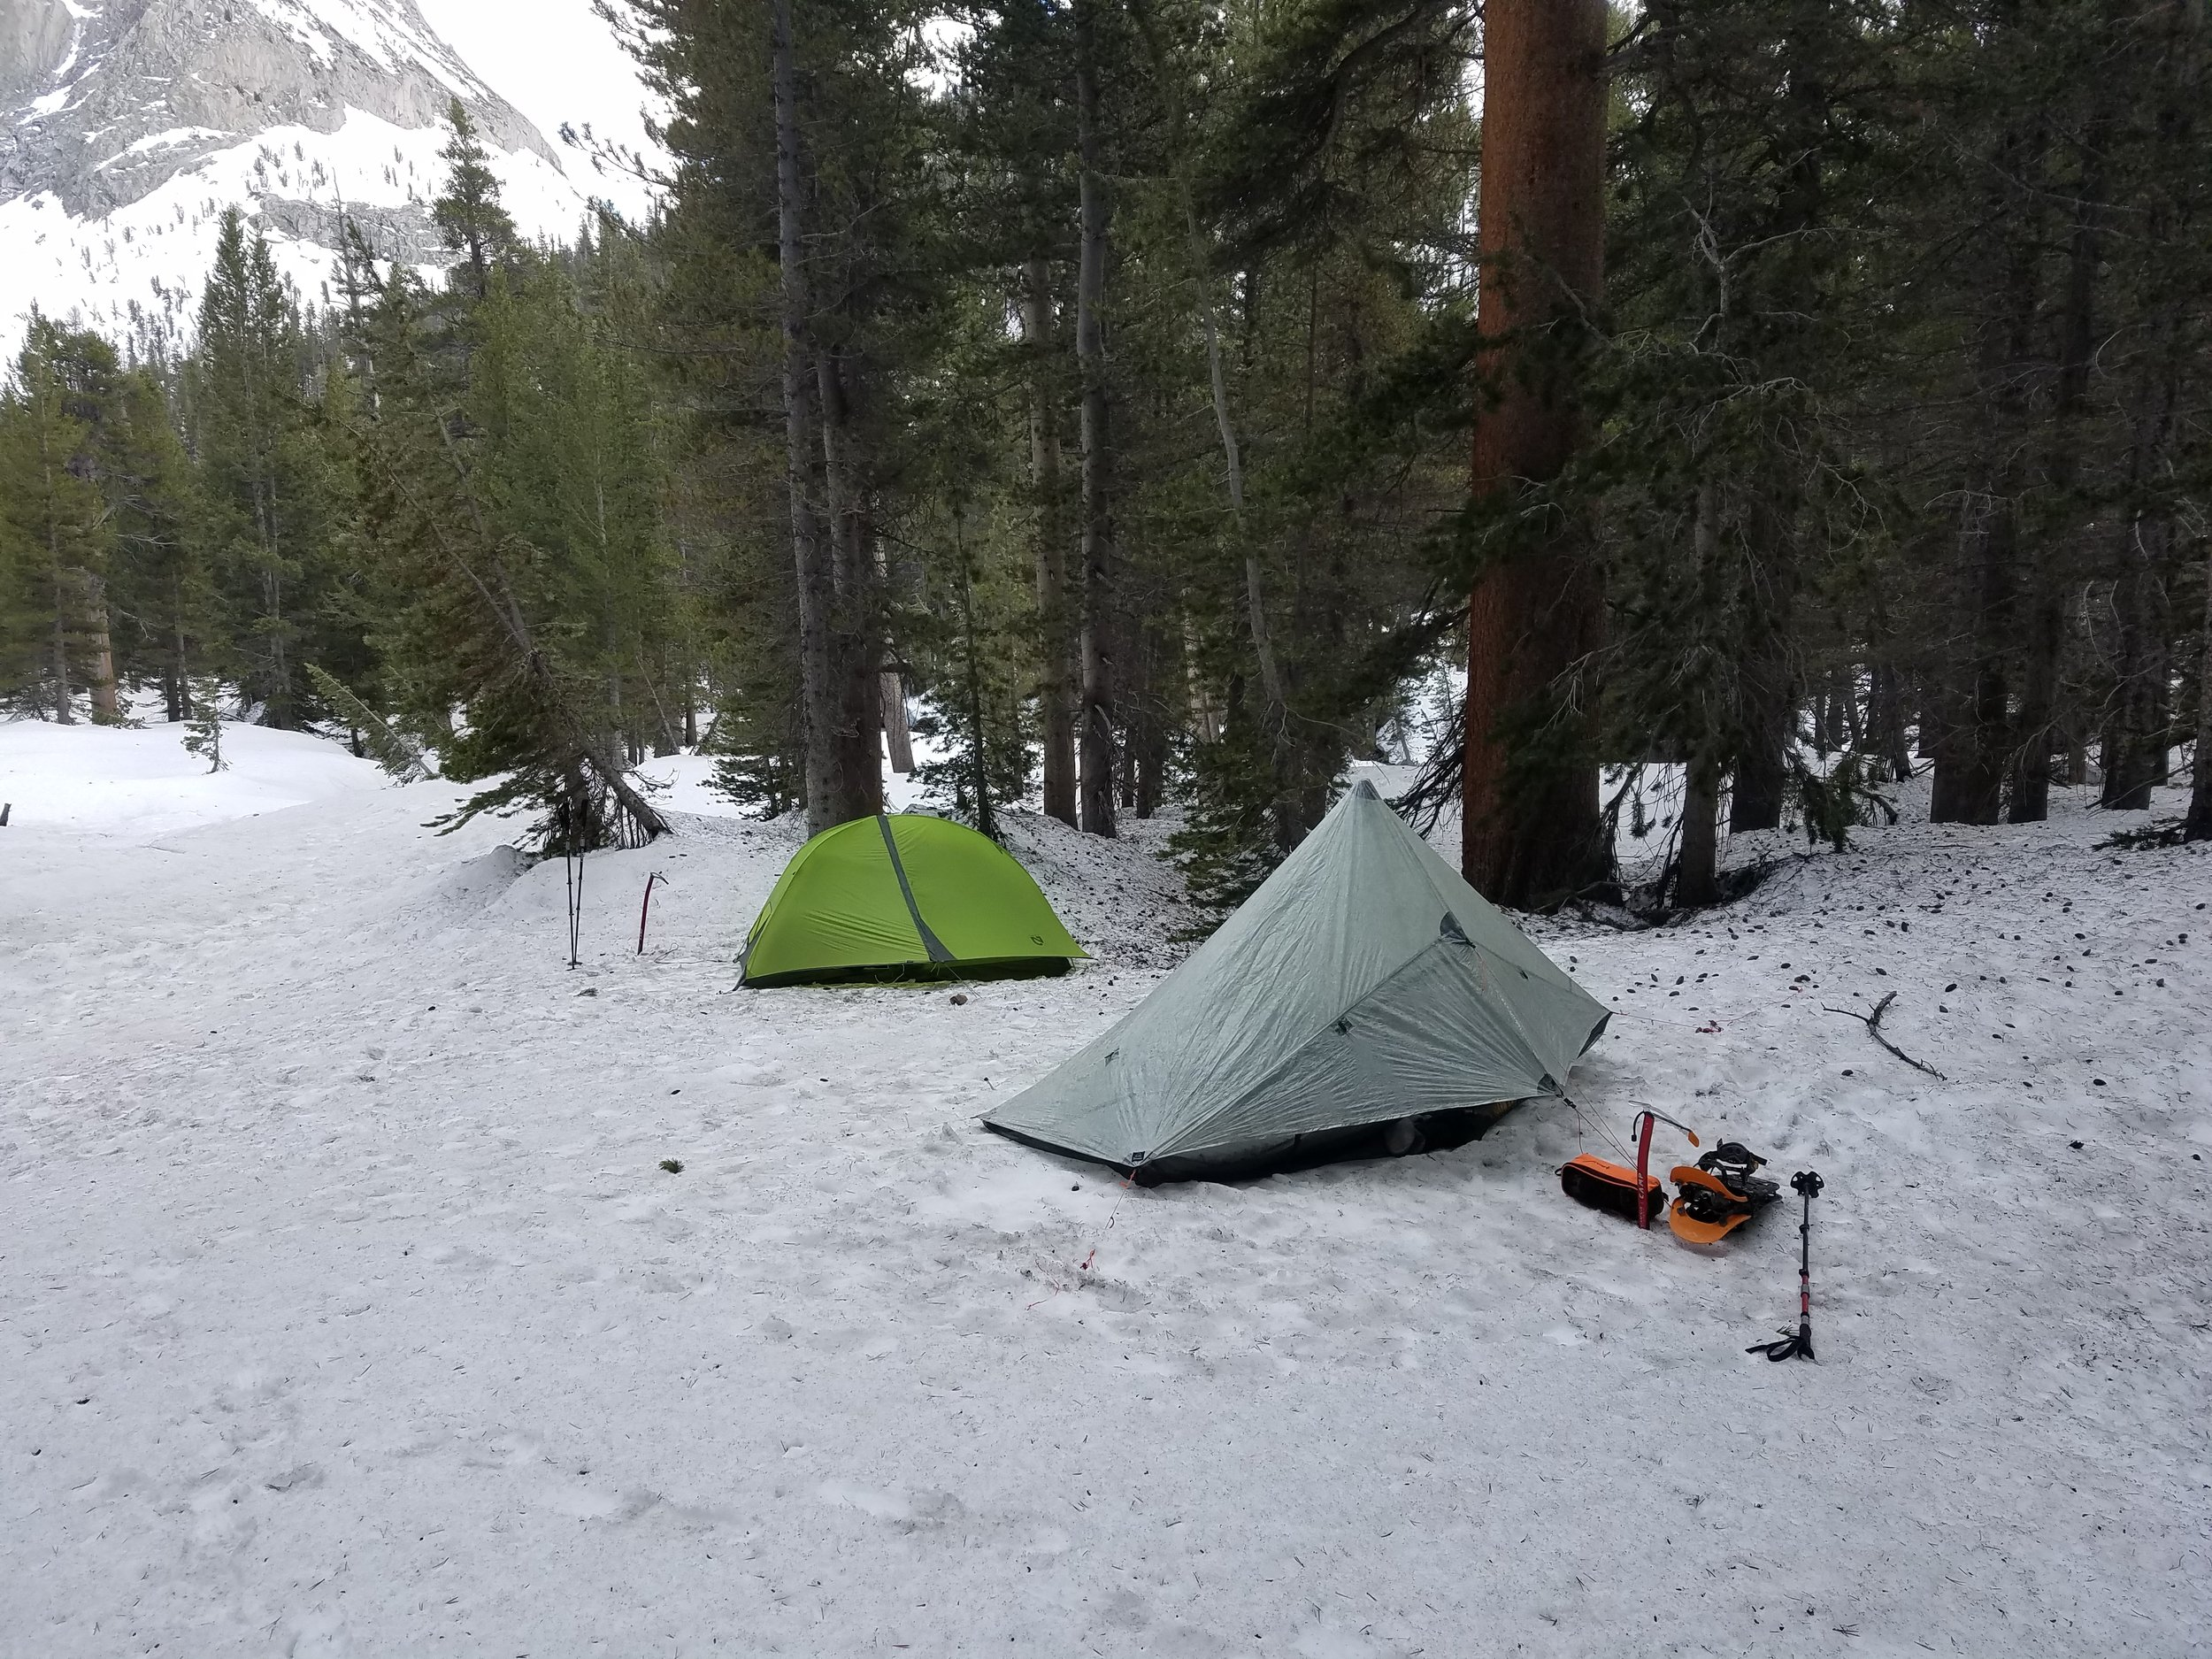 Camp for the warm(ish) night down from elevation.